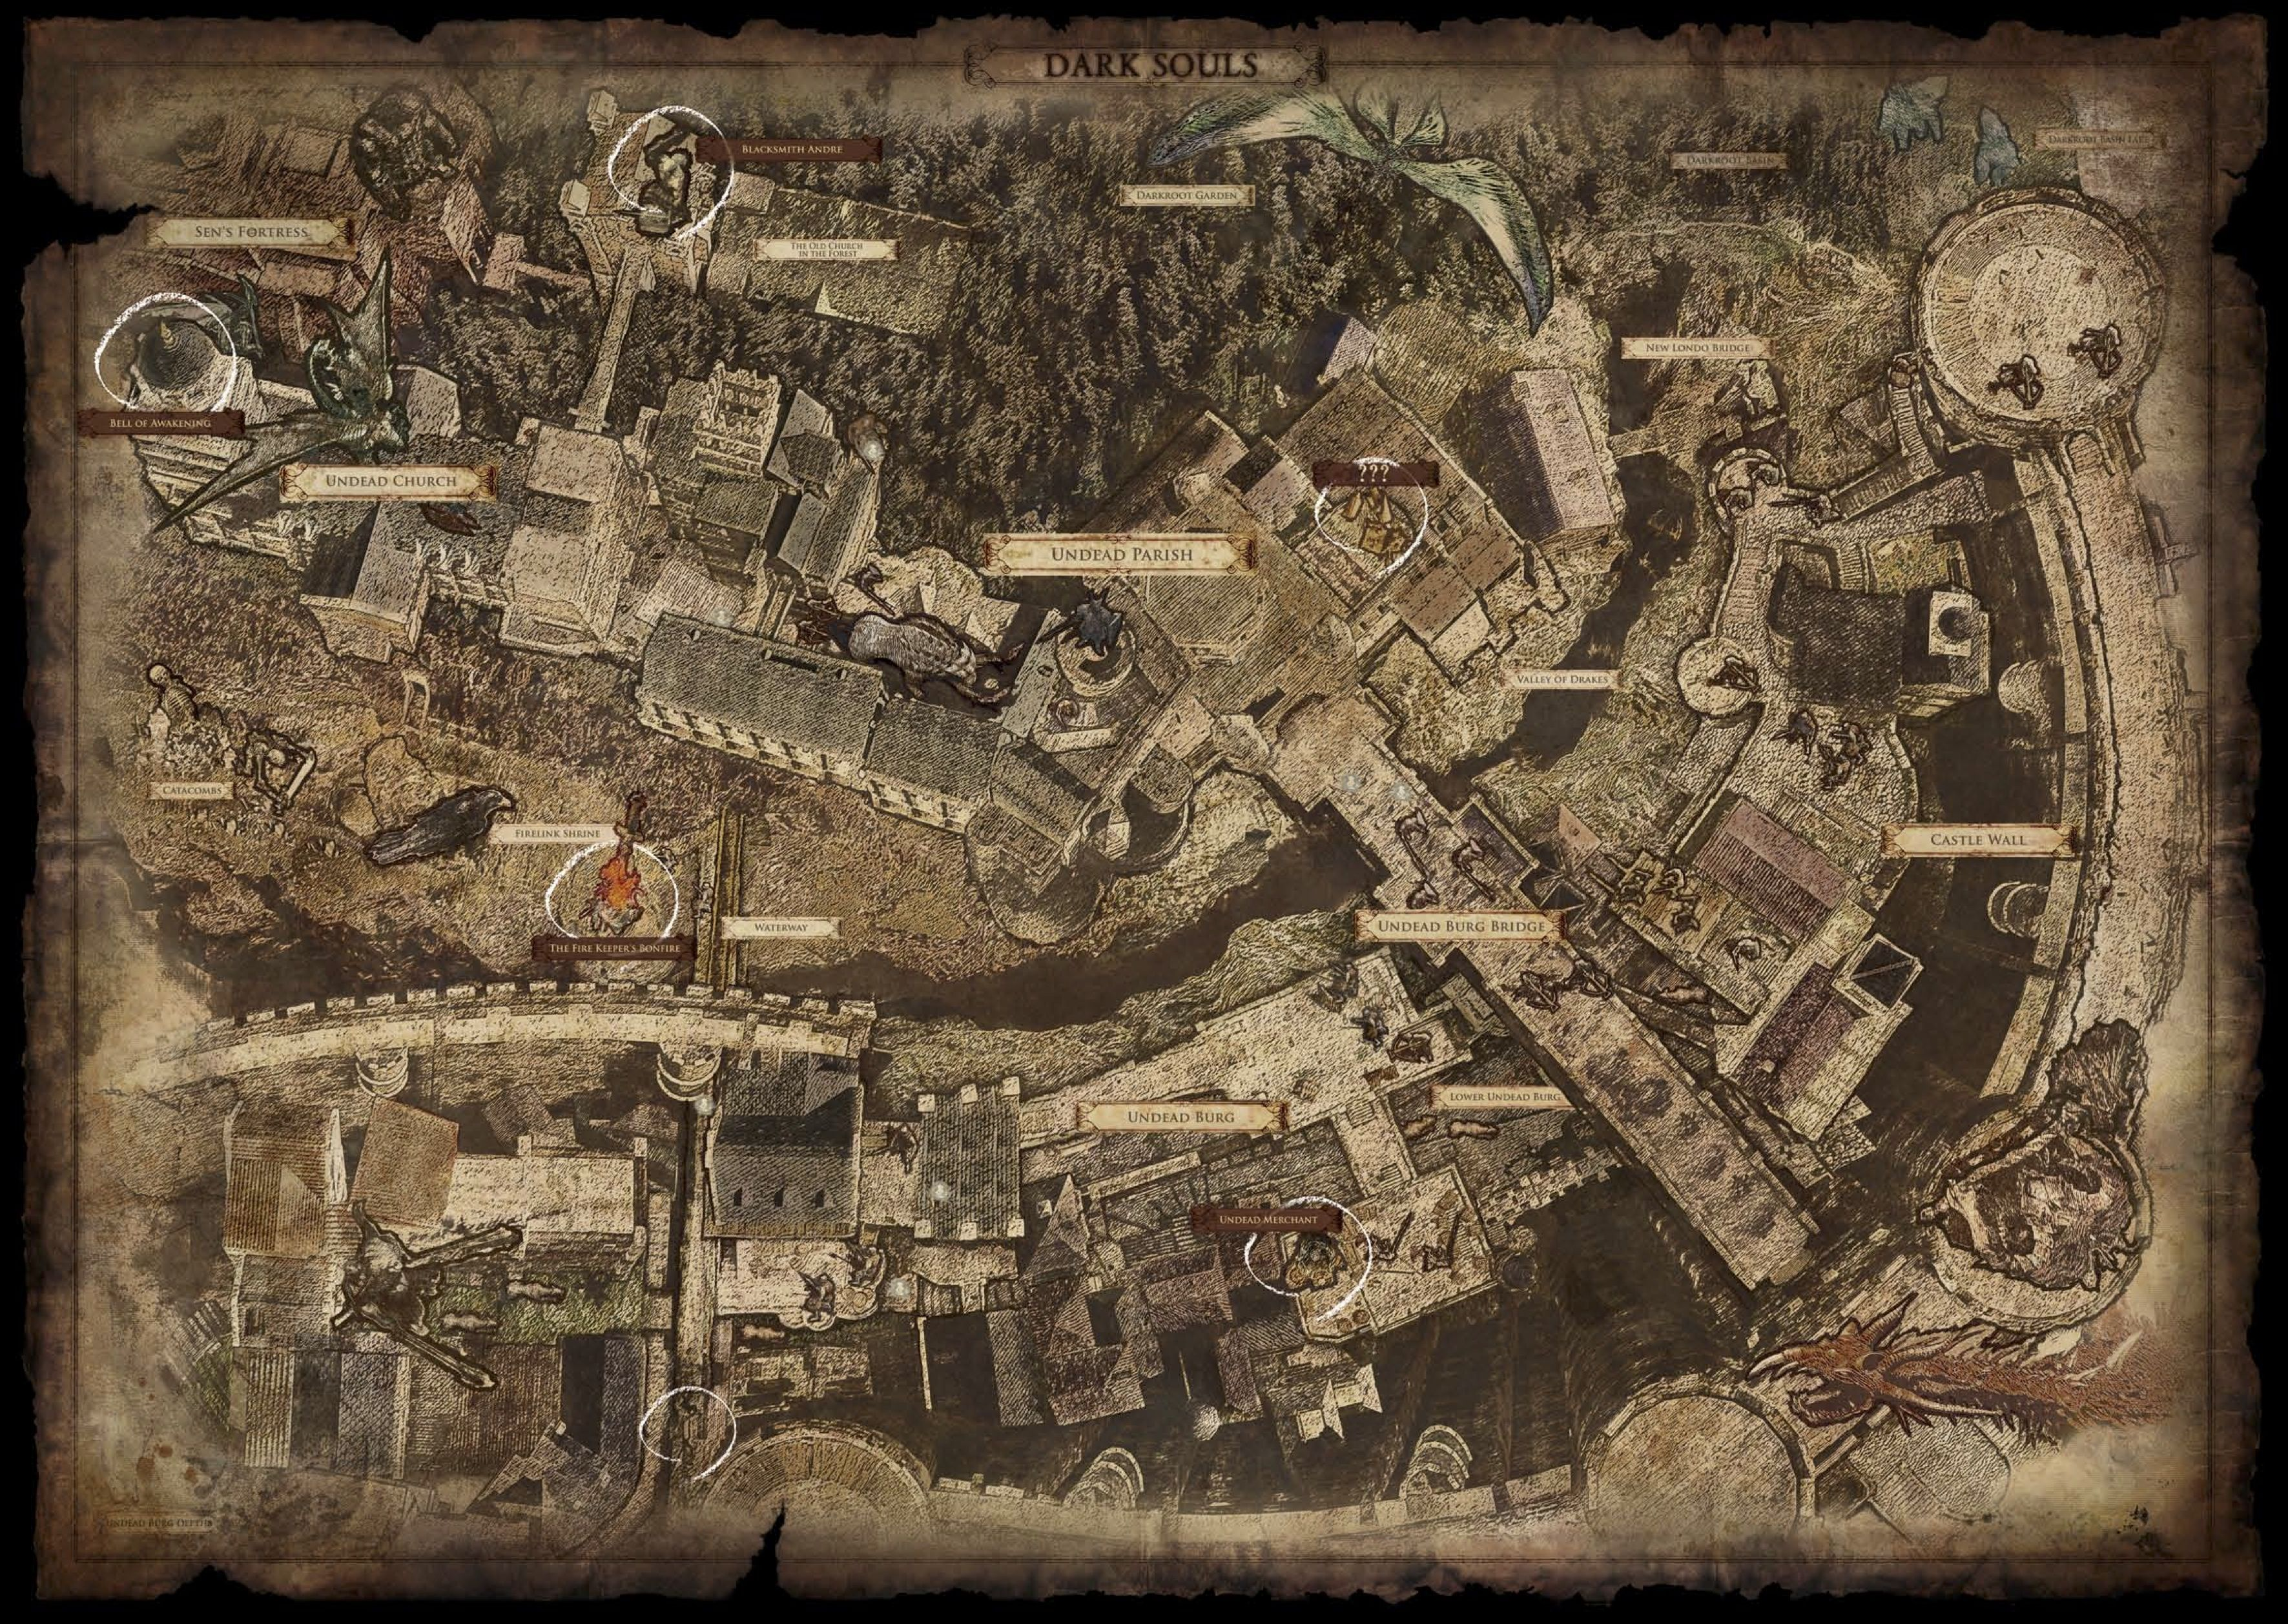 Dark Souls 1 map of Lordran, available as a PDF in the